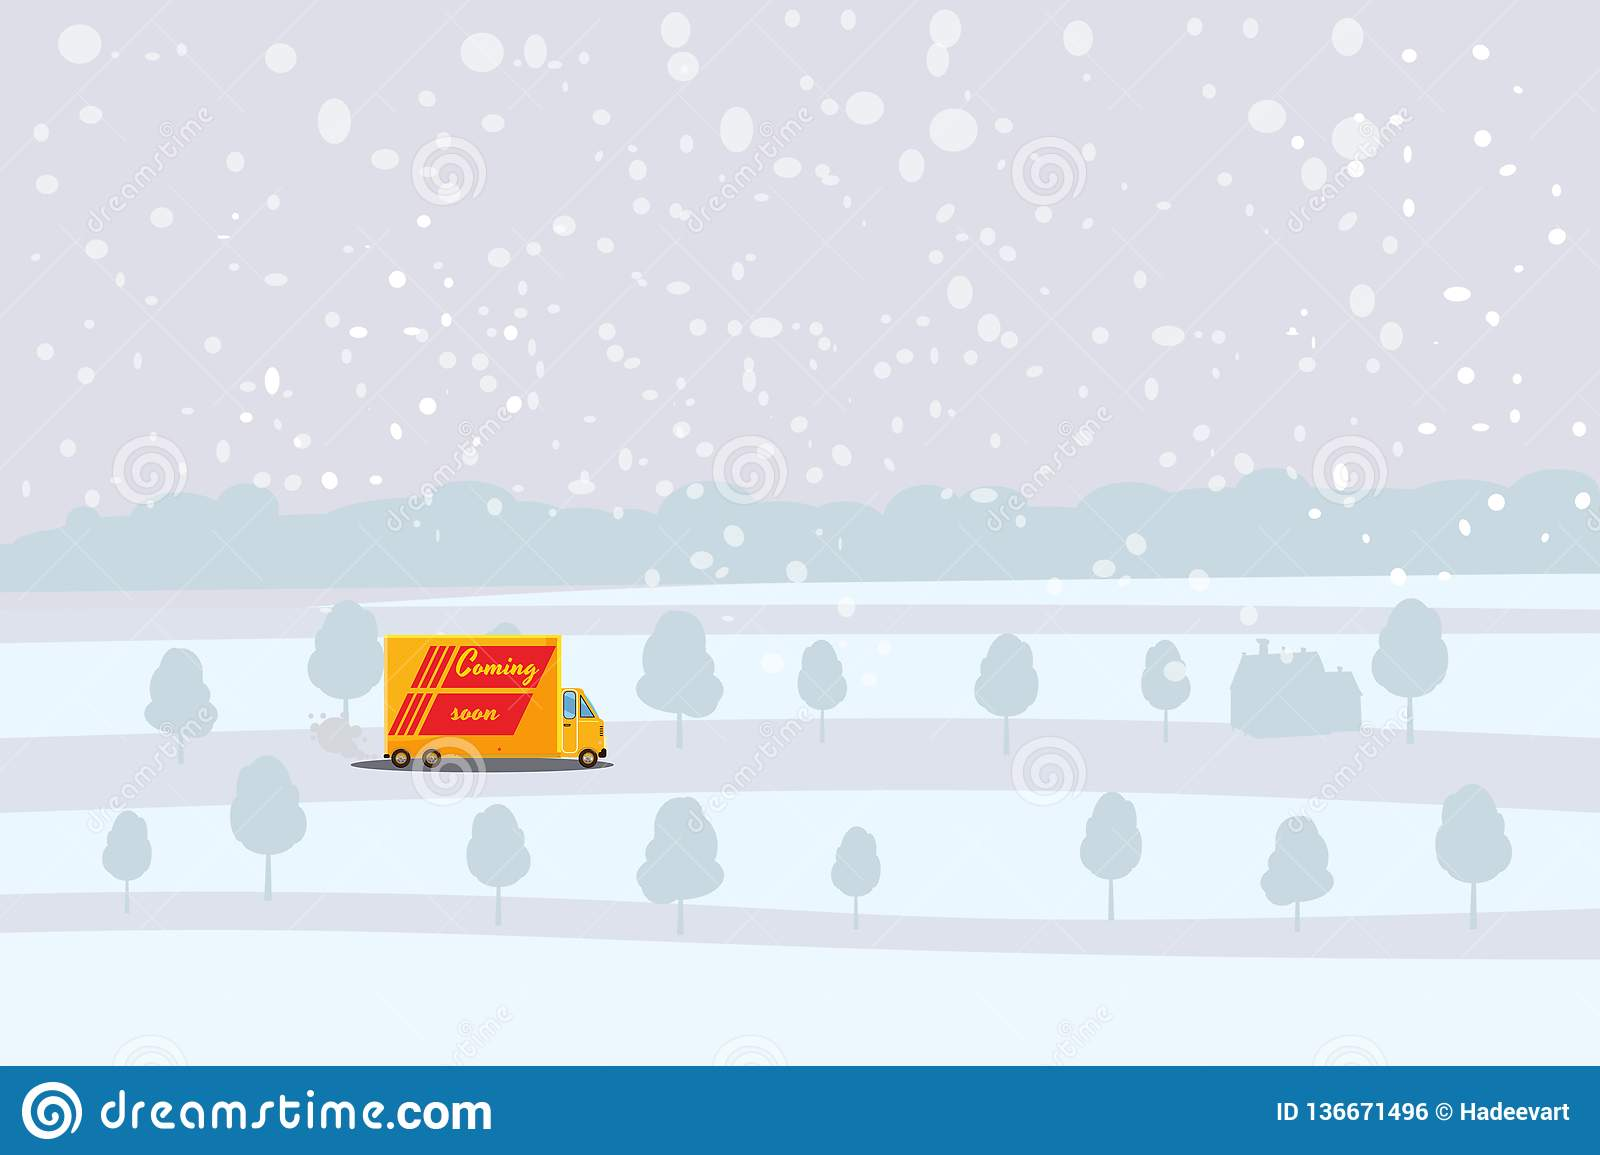 Delivery truck rides on the snow-covered road, concept, fast and convenient delivery of cargo and parcels. Product goods